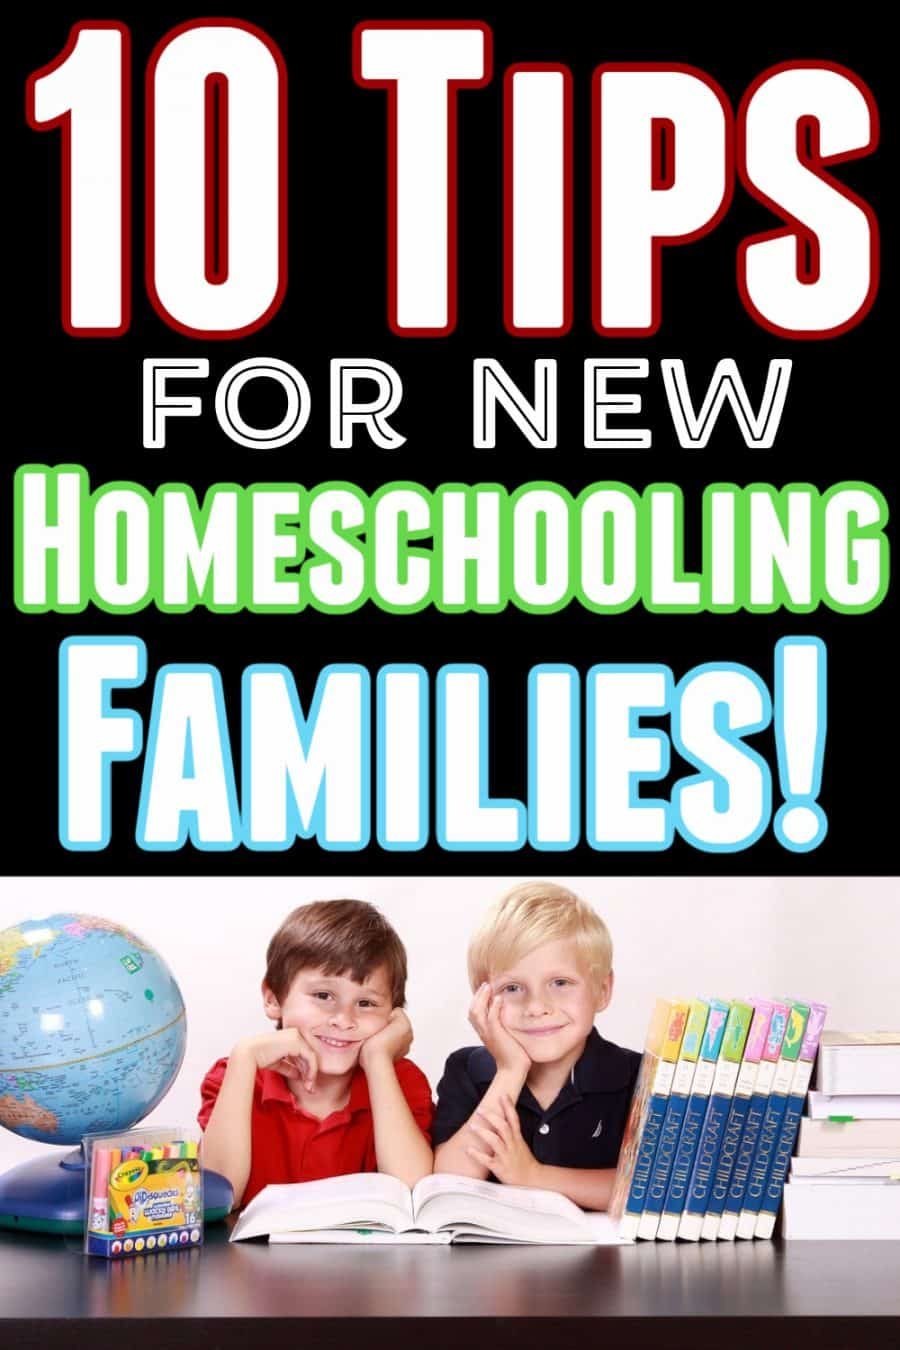 kids - 10 Tips For New Homeschooling Families